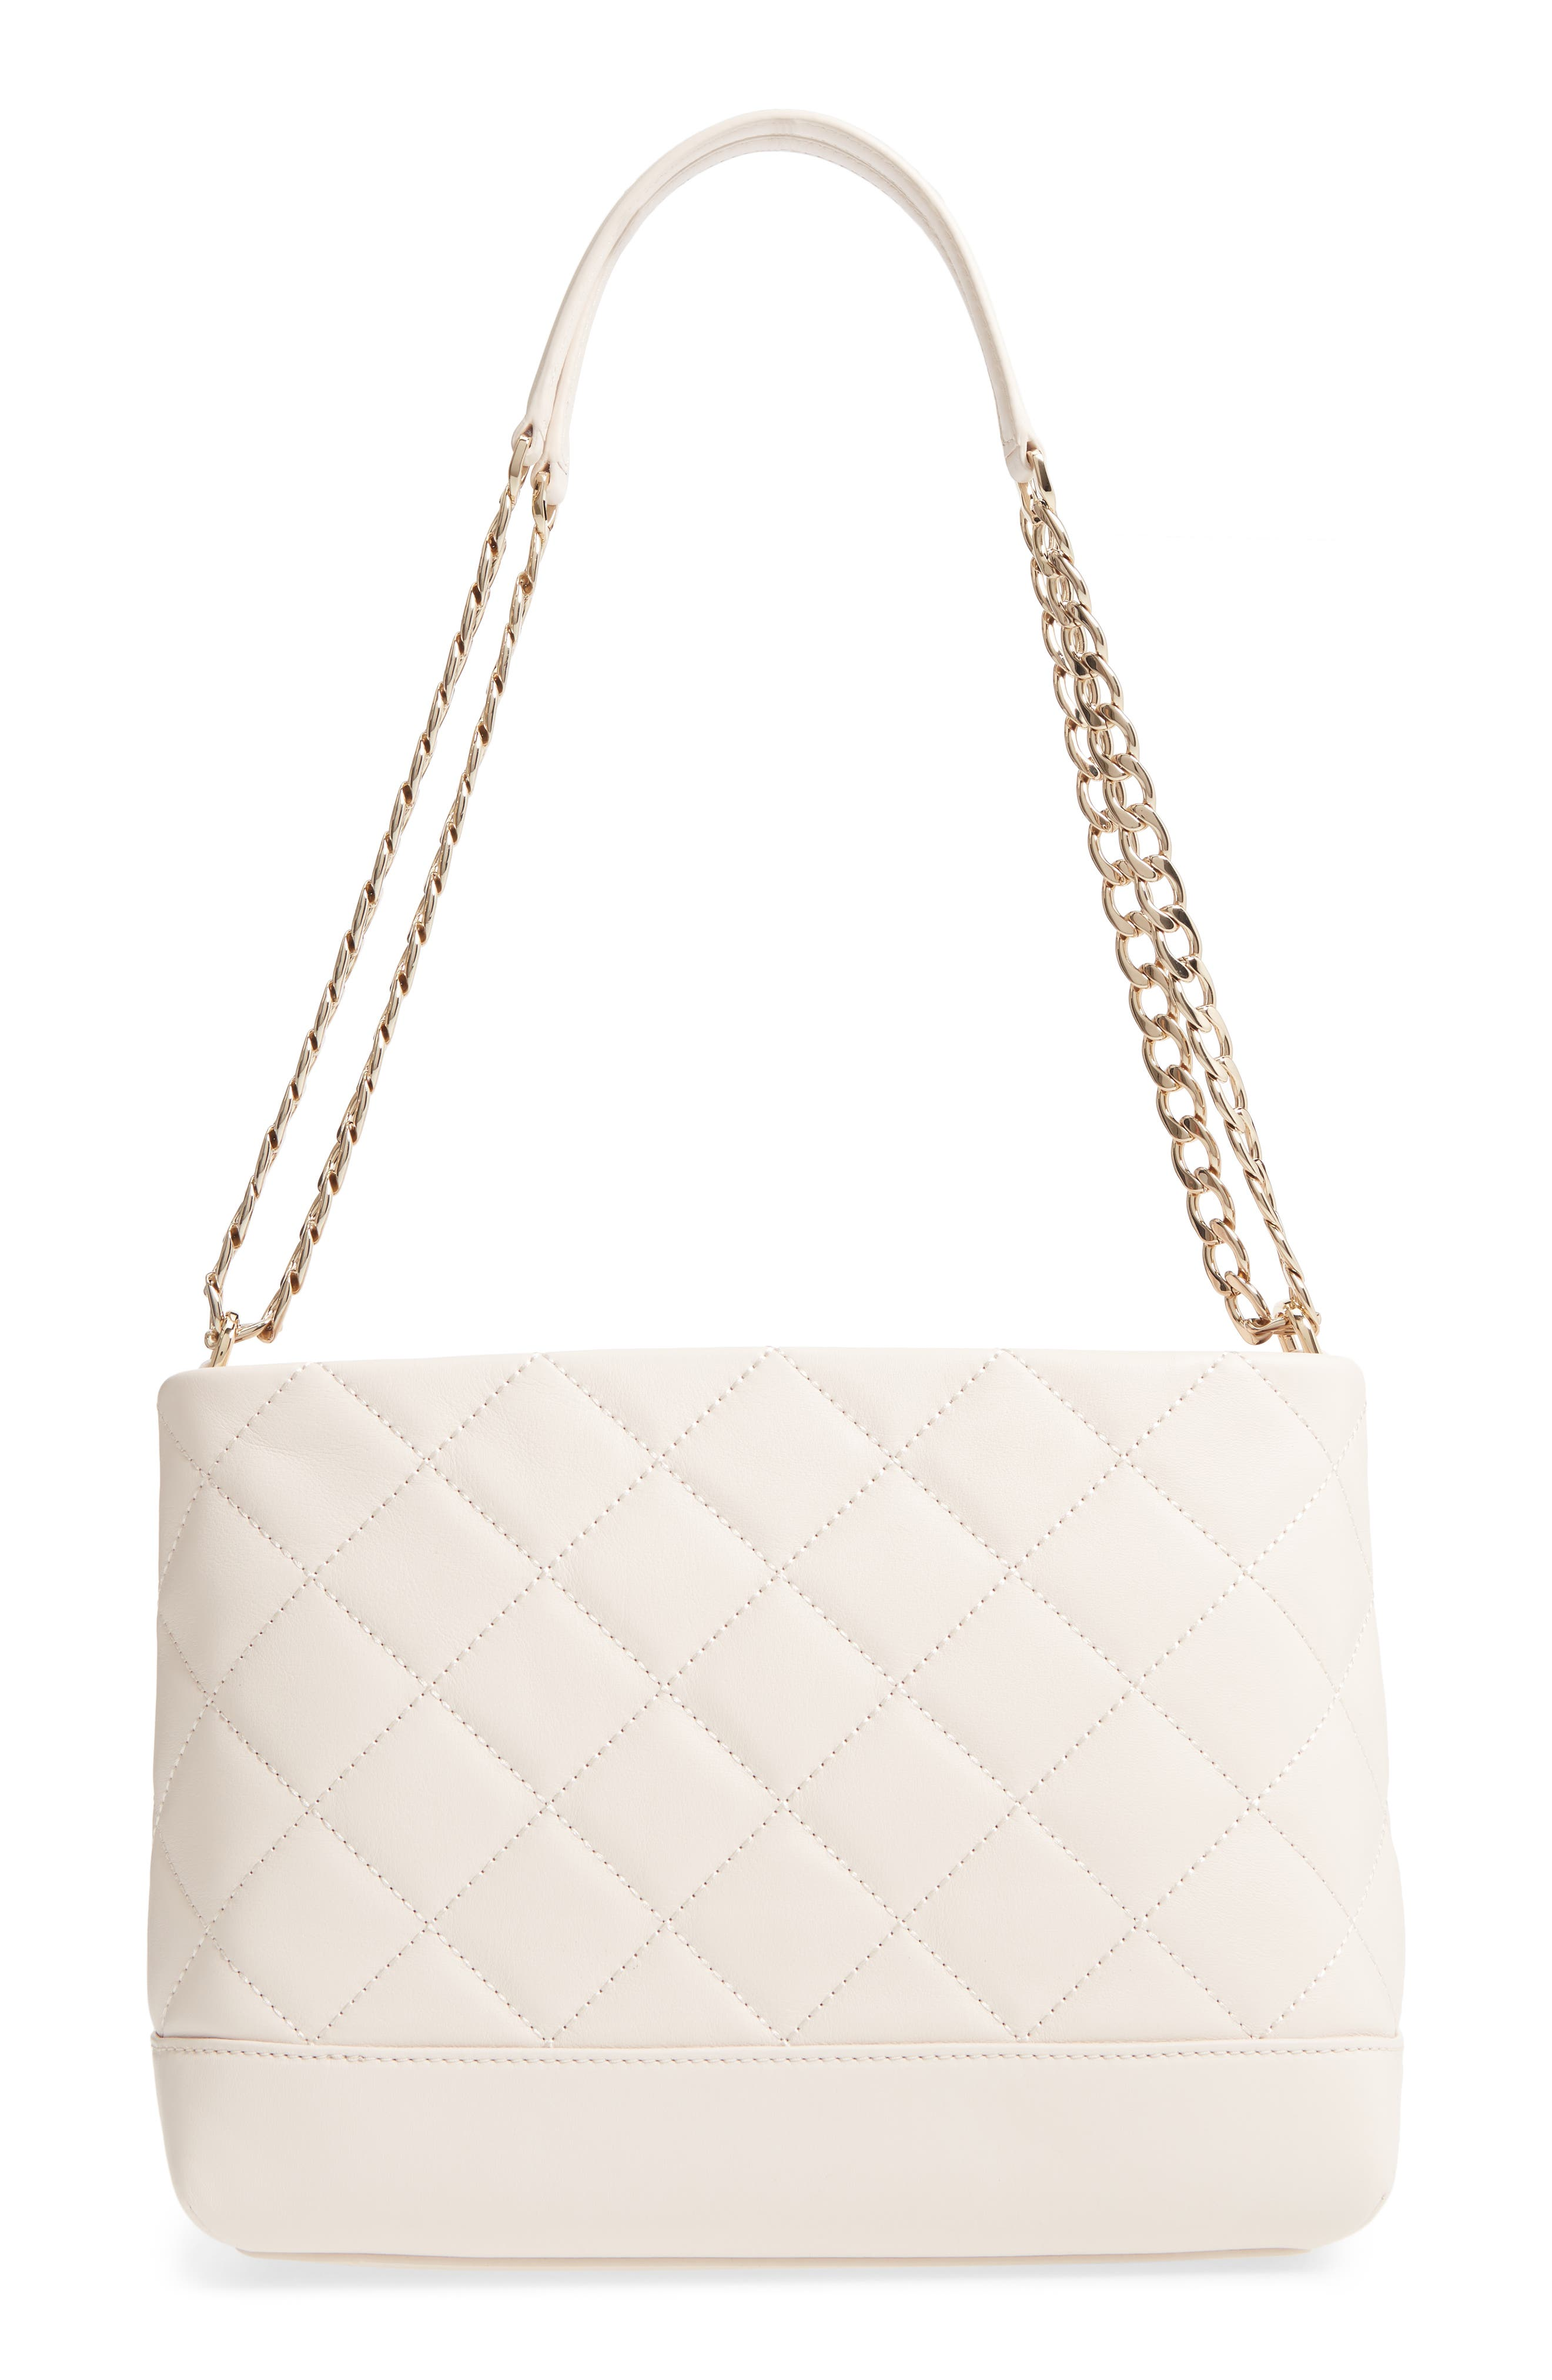 emerson place lorie quilted leather shoulder bag,                             Alternate thumbnail 3, color,                             900